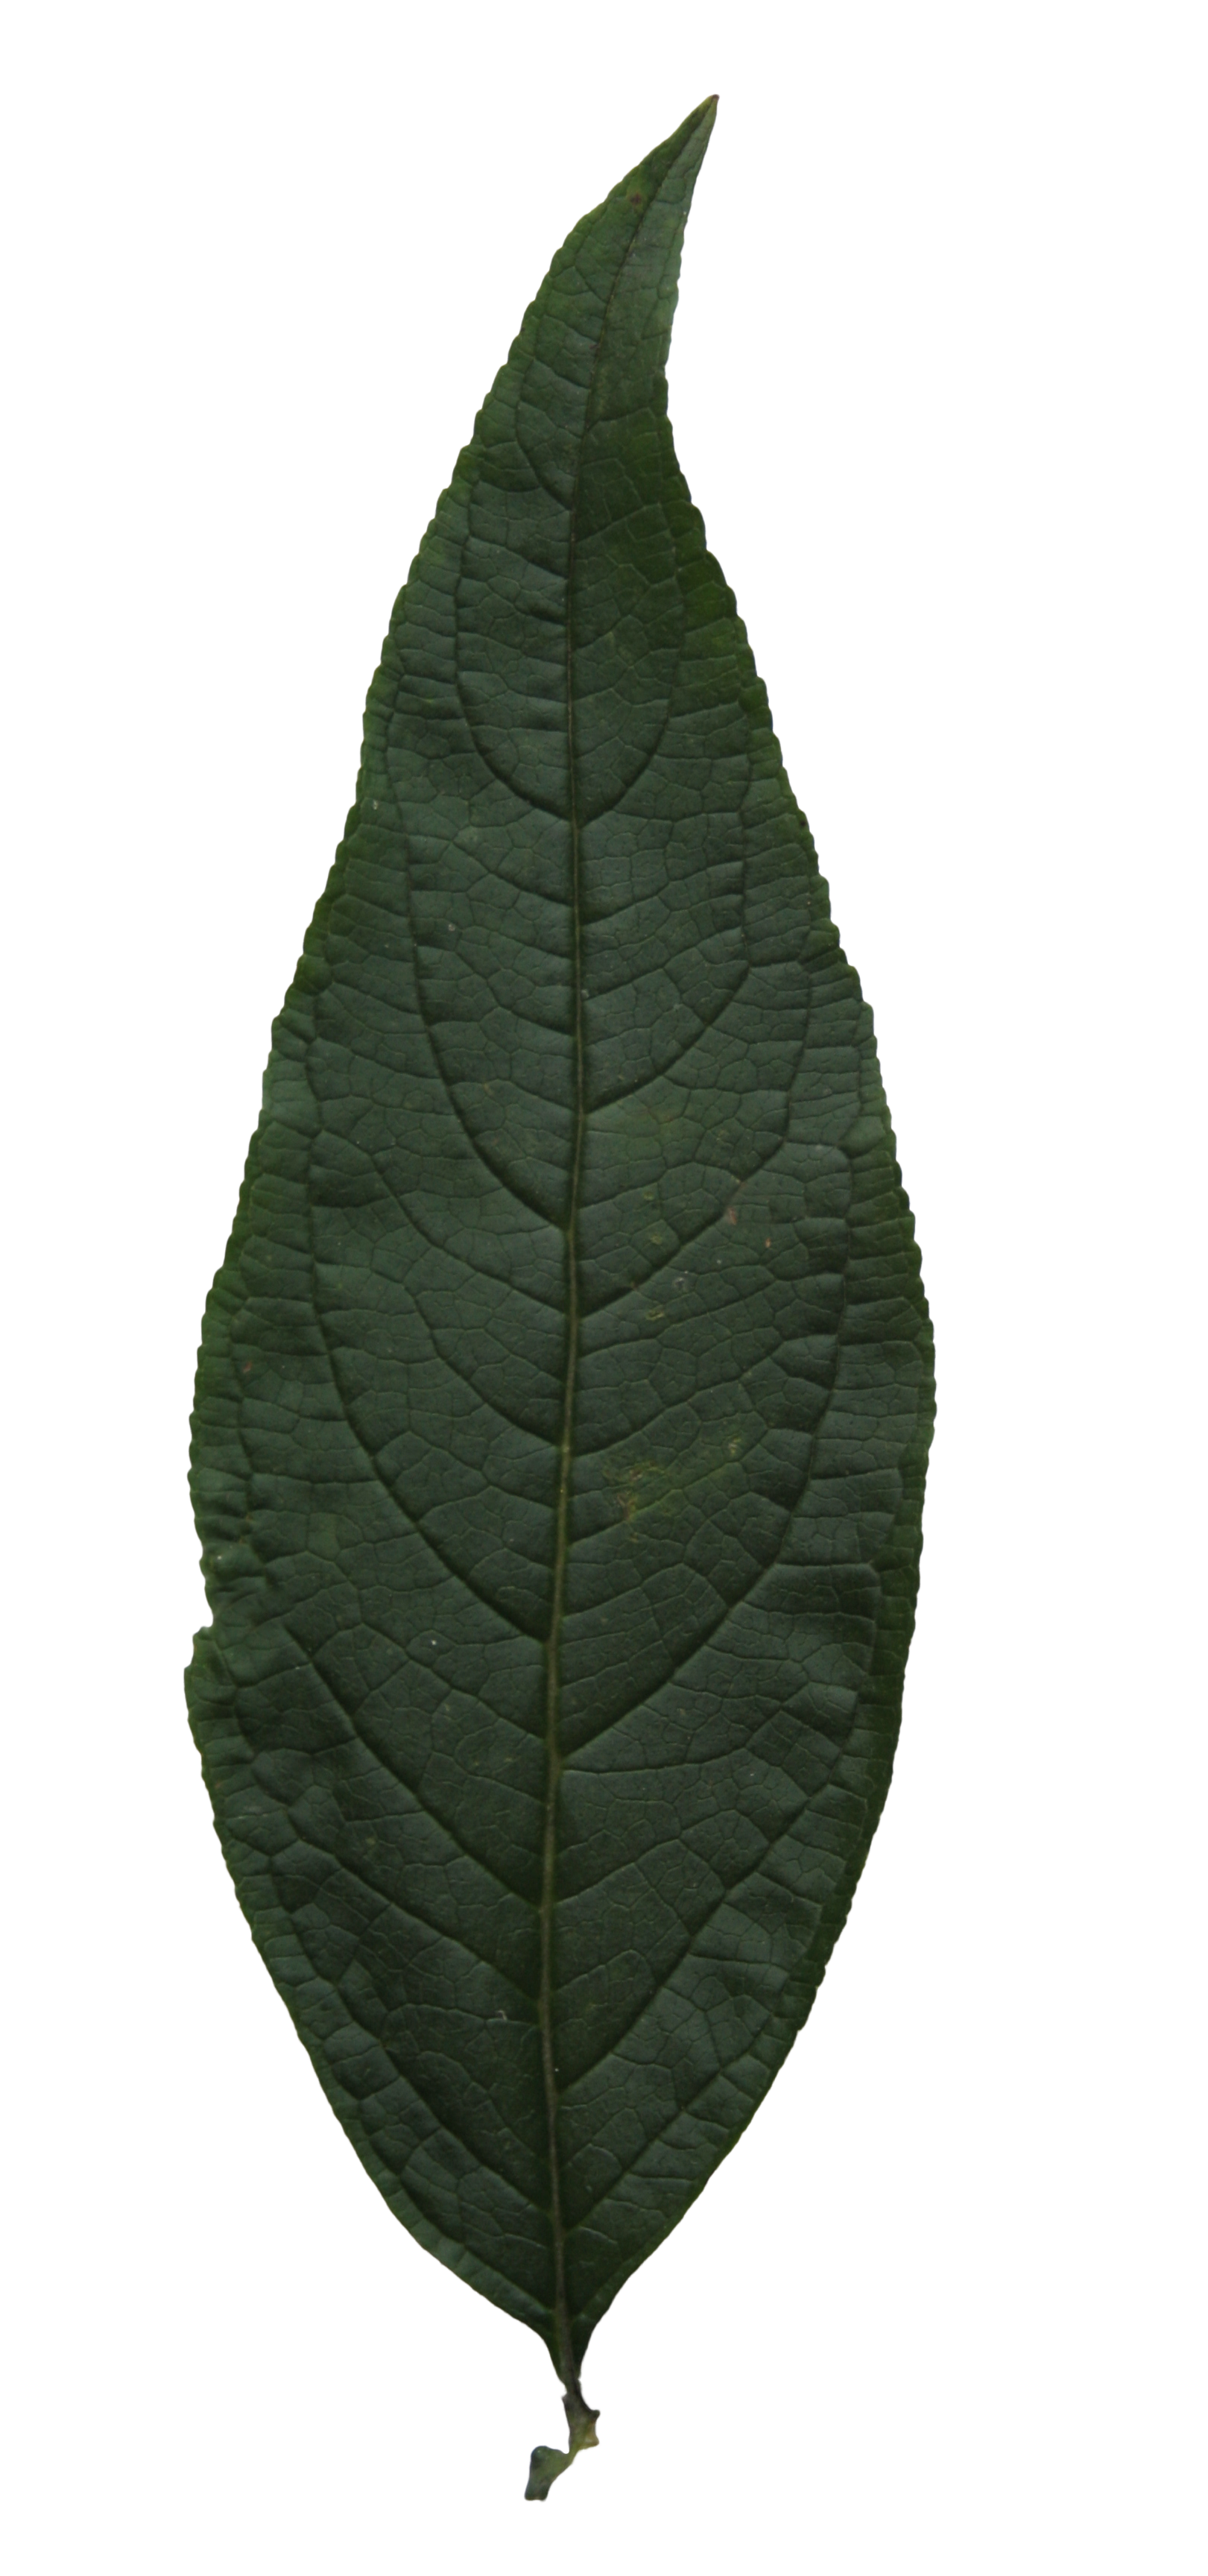 Free high resolution leaf texture | Free Cut Out people ...